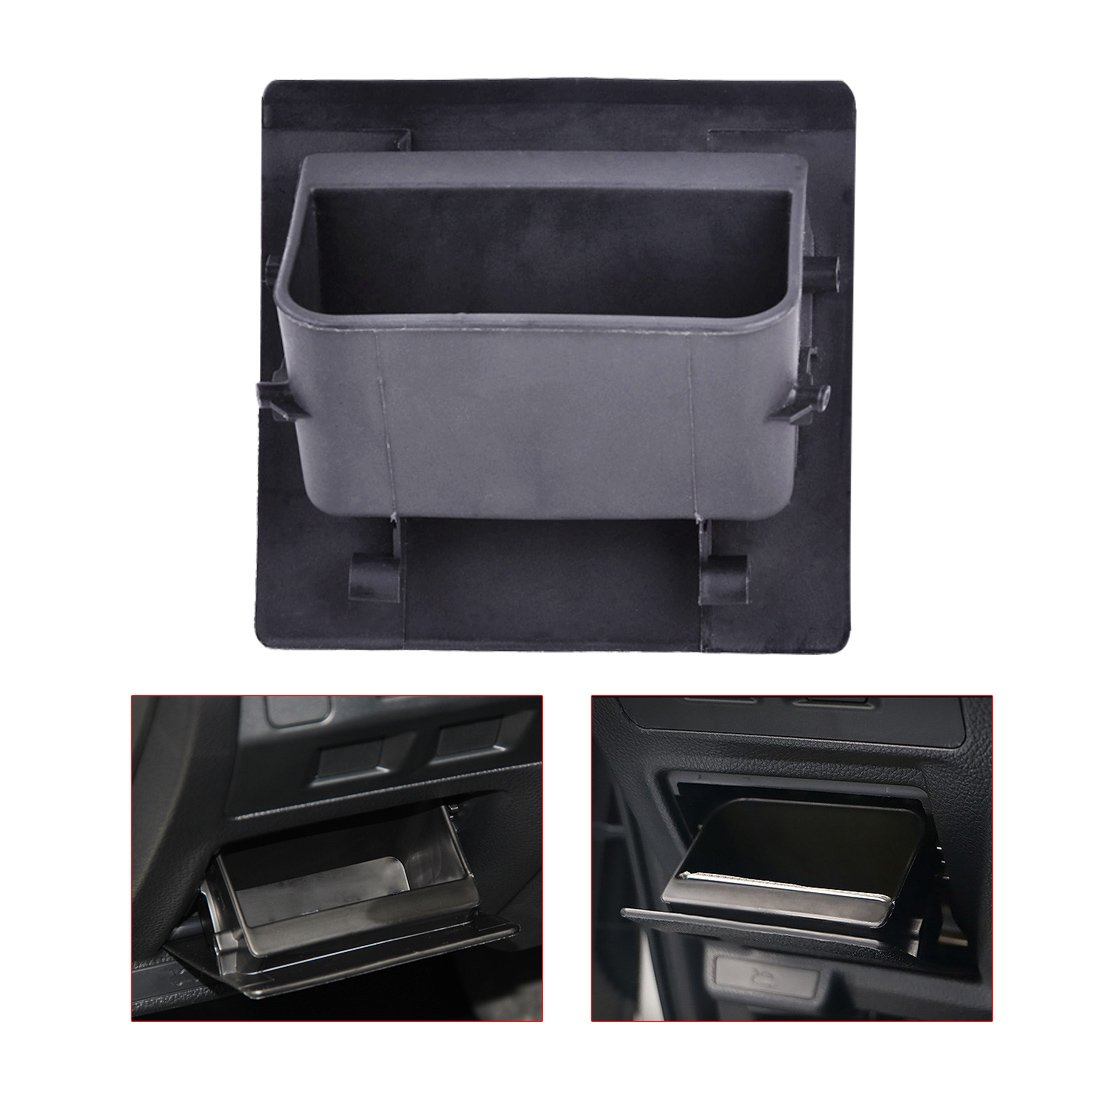 Subaru Fuse Box Beler Car Interior Inner Storage Tray Coin Container Holder For Xv Forester Impreza